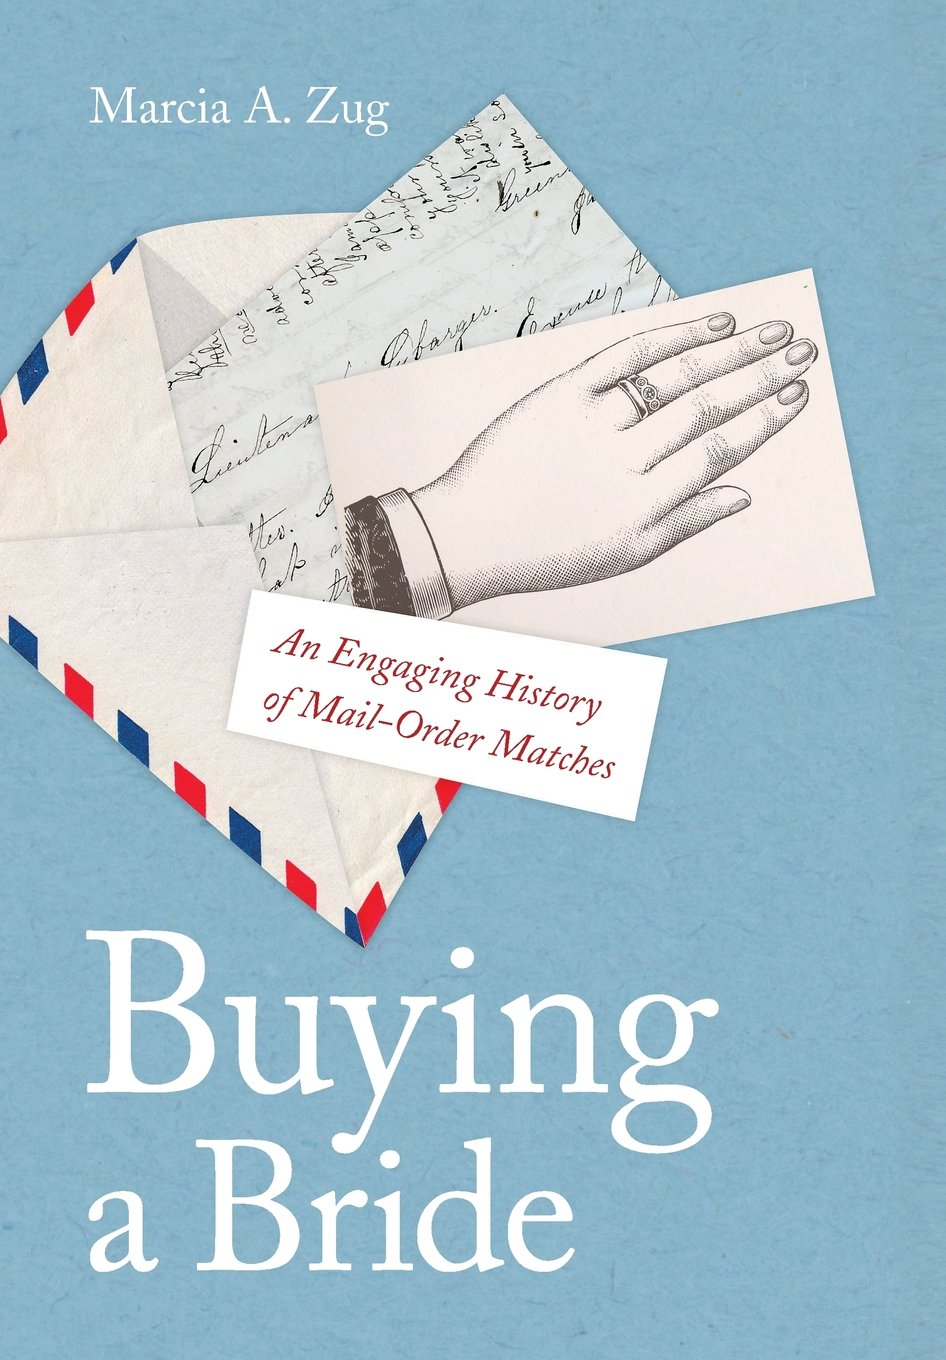 Buying a bride an engaging history of mail order matches marcia a buying a bride an engaging history of mail order matches marcia a zug 9780814771815 amazon books solutioingenieria Image collections